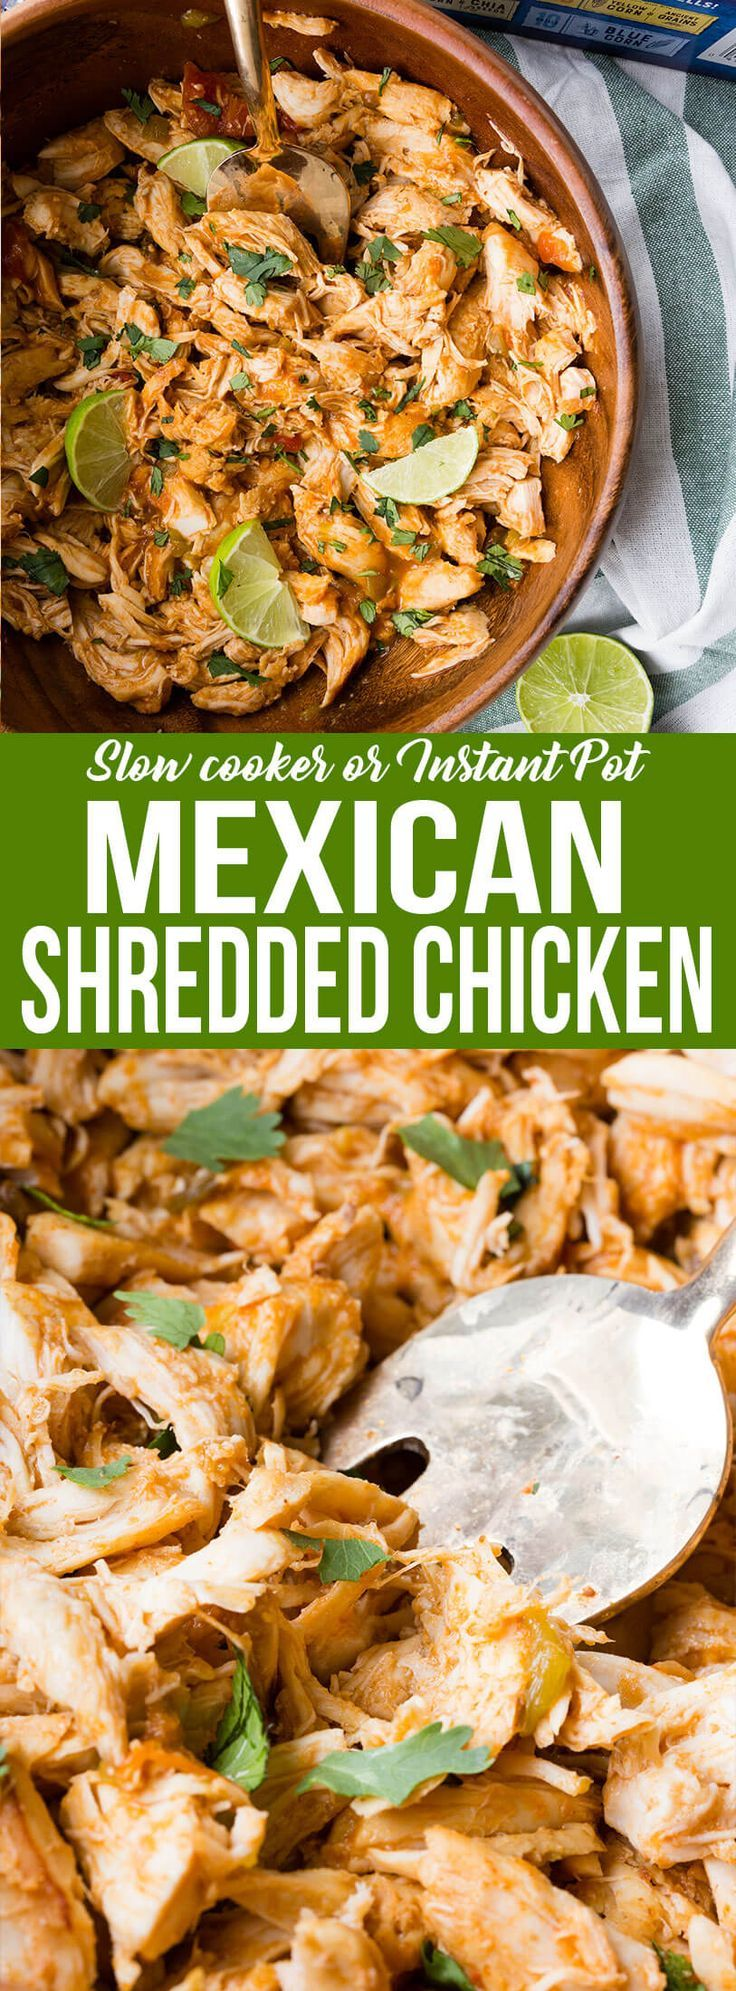 Mexican Shredded Chicken (Pressure Cooker + Slow Cooker) is the perfect filling for your Taco Tuesday tacos, or your game day Taco Bar! Filled with awesome flavors thanks to Ortega Thick and Chunky Mild Salsa, Ortega Diced Green Chiles, Ortega Mild Green Taco Sauce, and Ortega Taco Seasoning Mix, this is a simple, but delicious meal! #ad